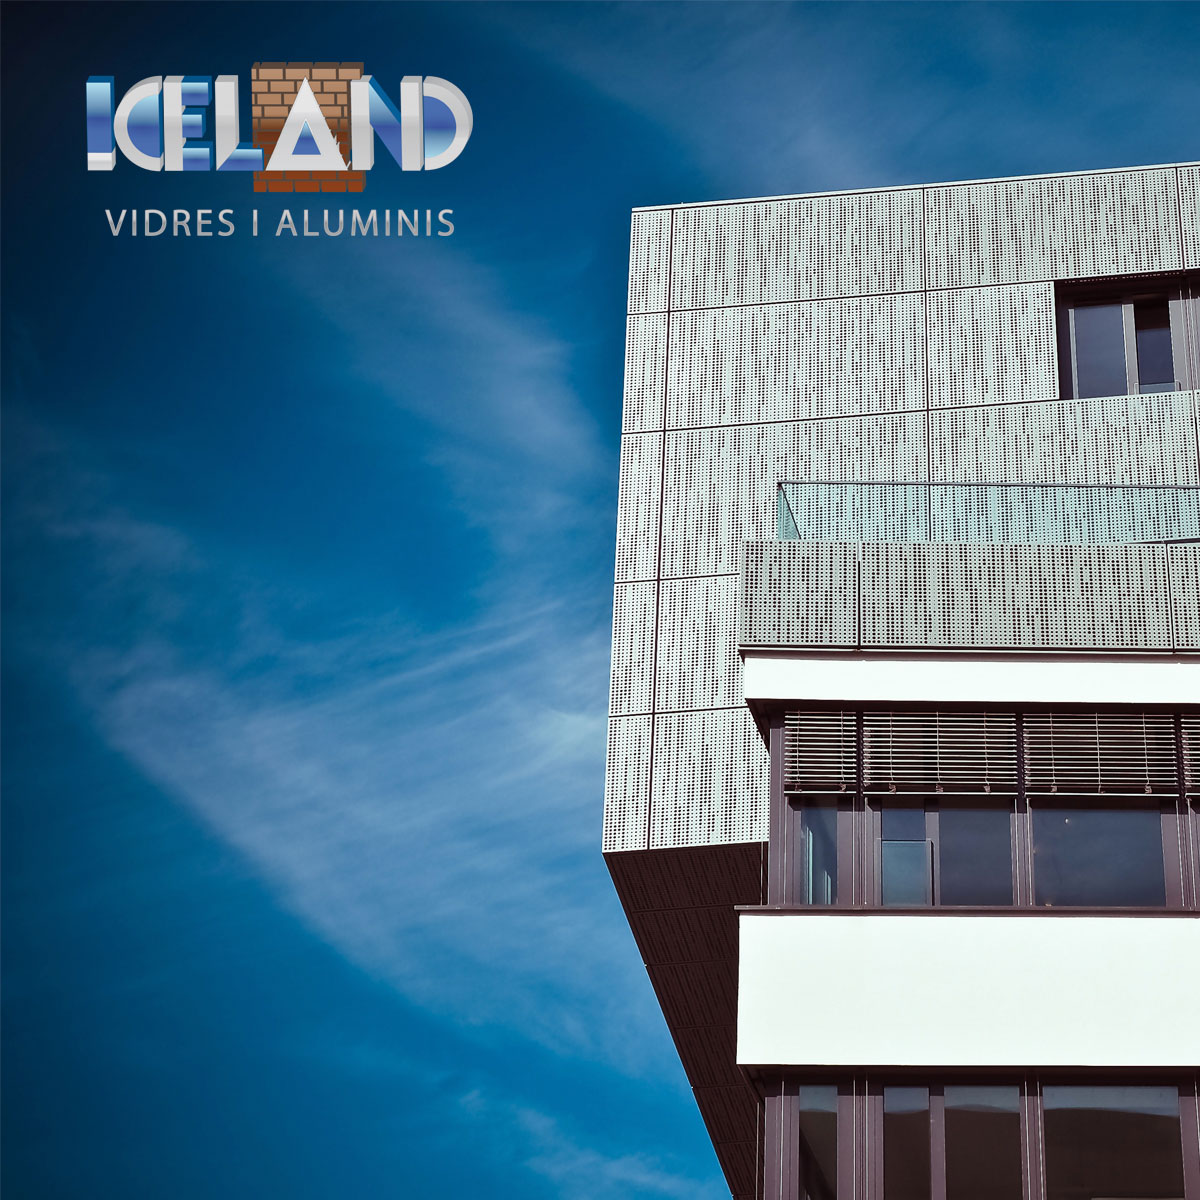 @icelandgranollers, Iceland Vidres i Aluminis Granollers